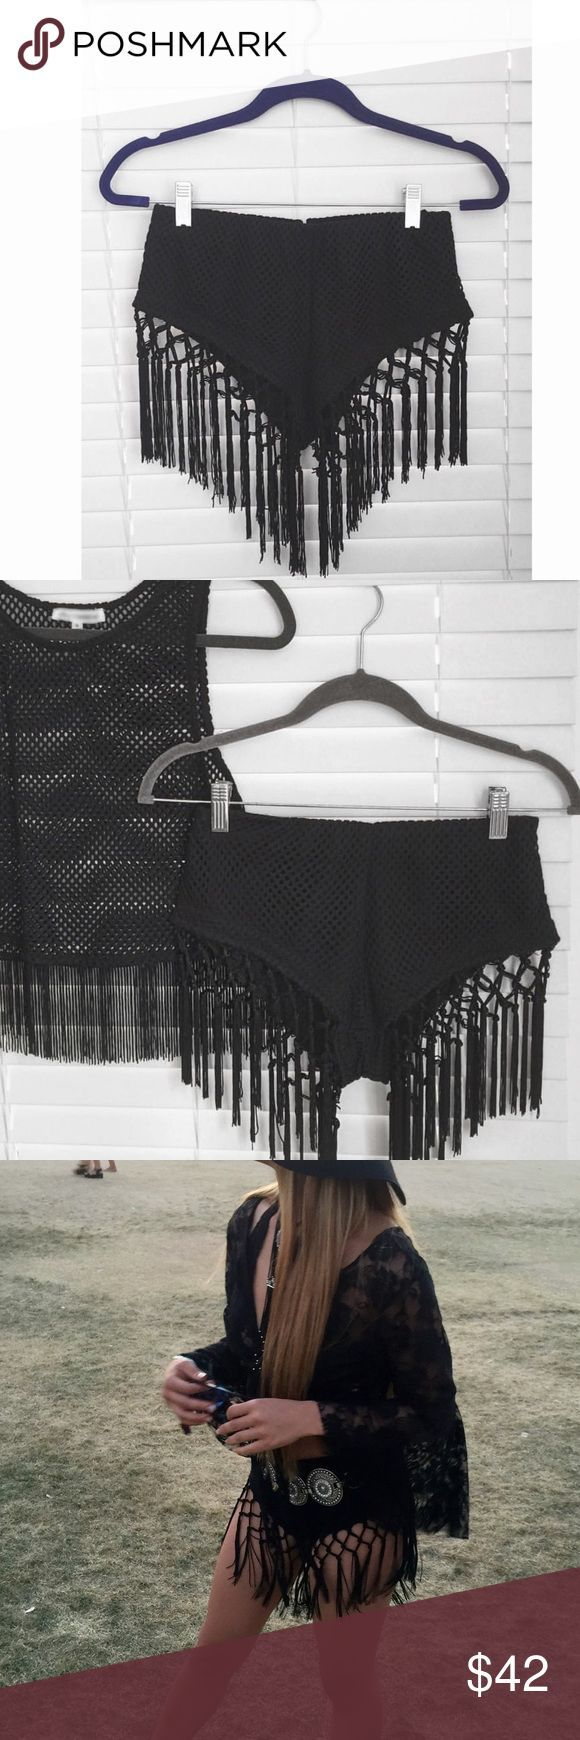 BLACK FESTIVAL SHORTS Bought from Lex Mila, worn once to coachella, amazing condition!!!! Adorable for festivals !!! Not sold online anymore. A bit high waisted, and has fringe  size s/m NG for exposure Nasty Gal Shorts